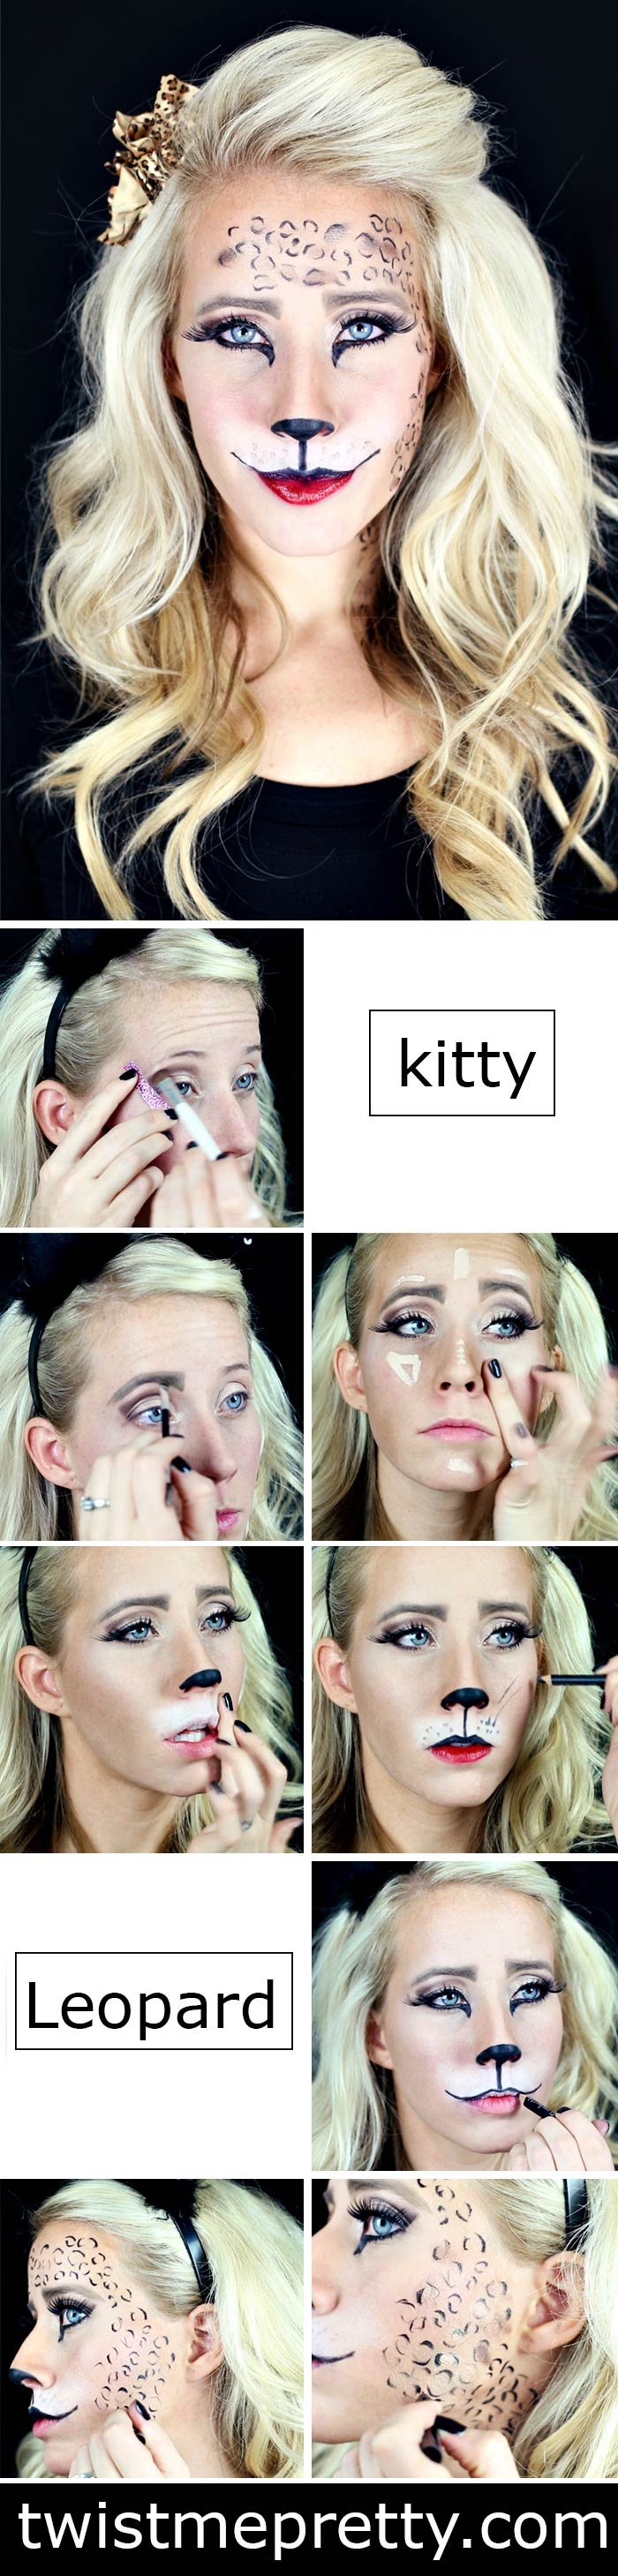 easy kitty and leopard makeup tutorial